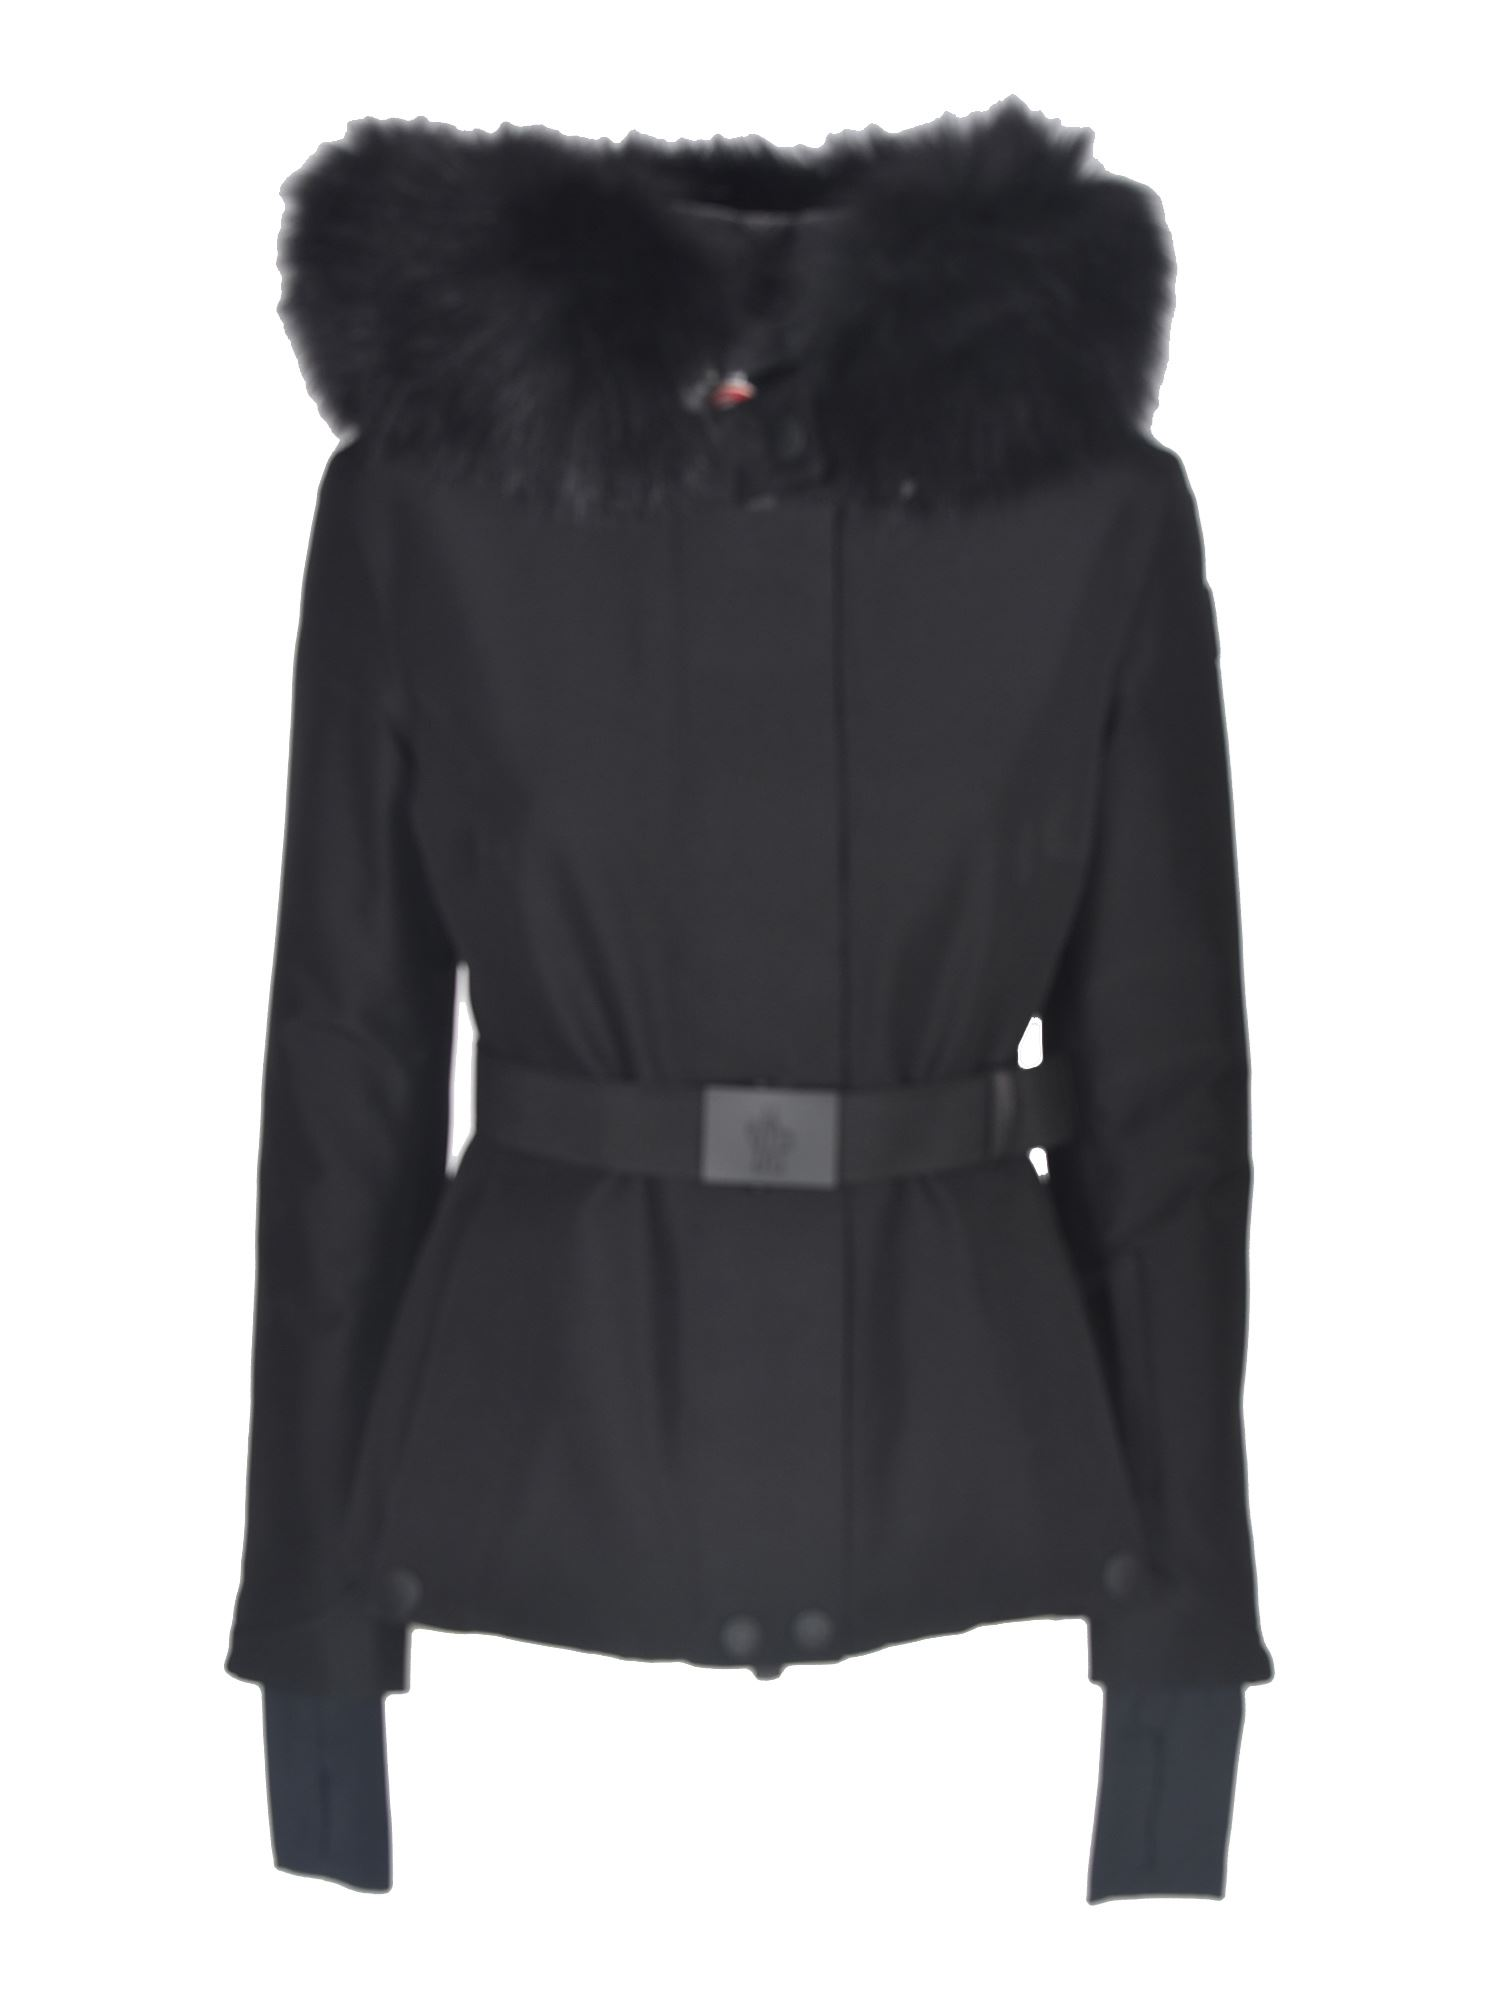 Moncler Grenoble LAPLANCE DOWN JACKET IN BLACK